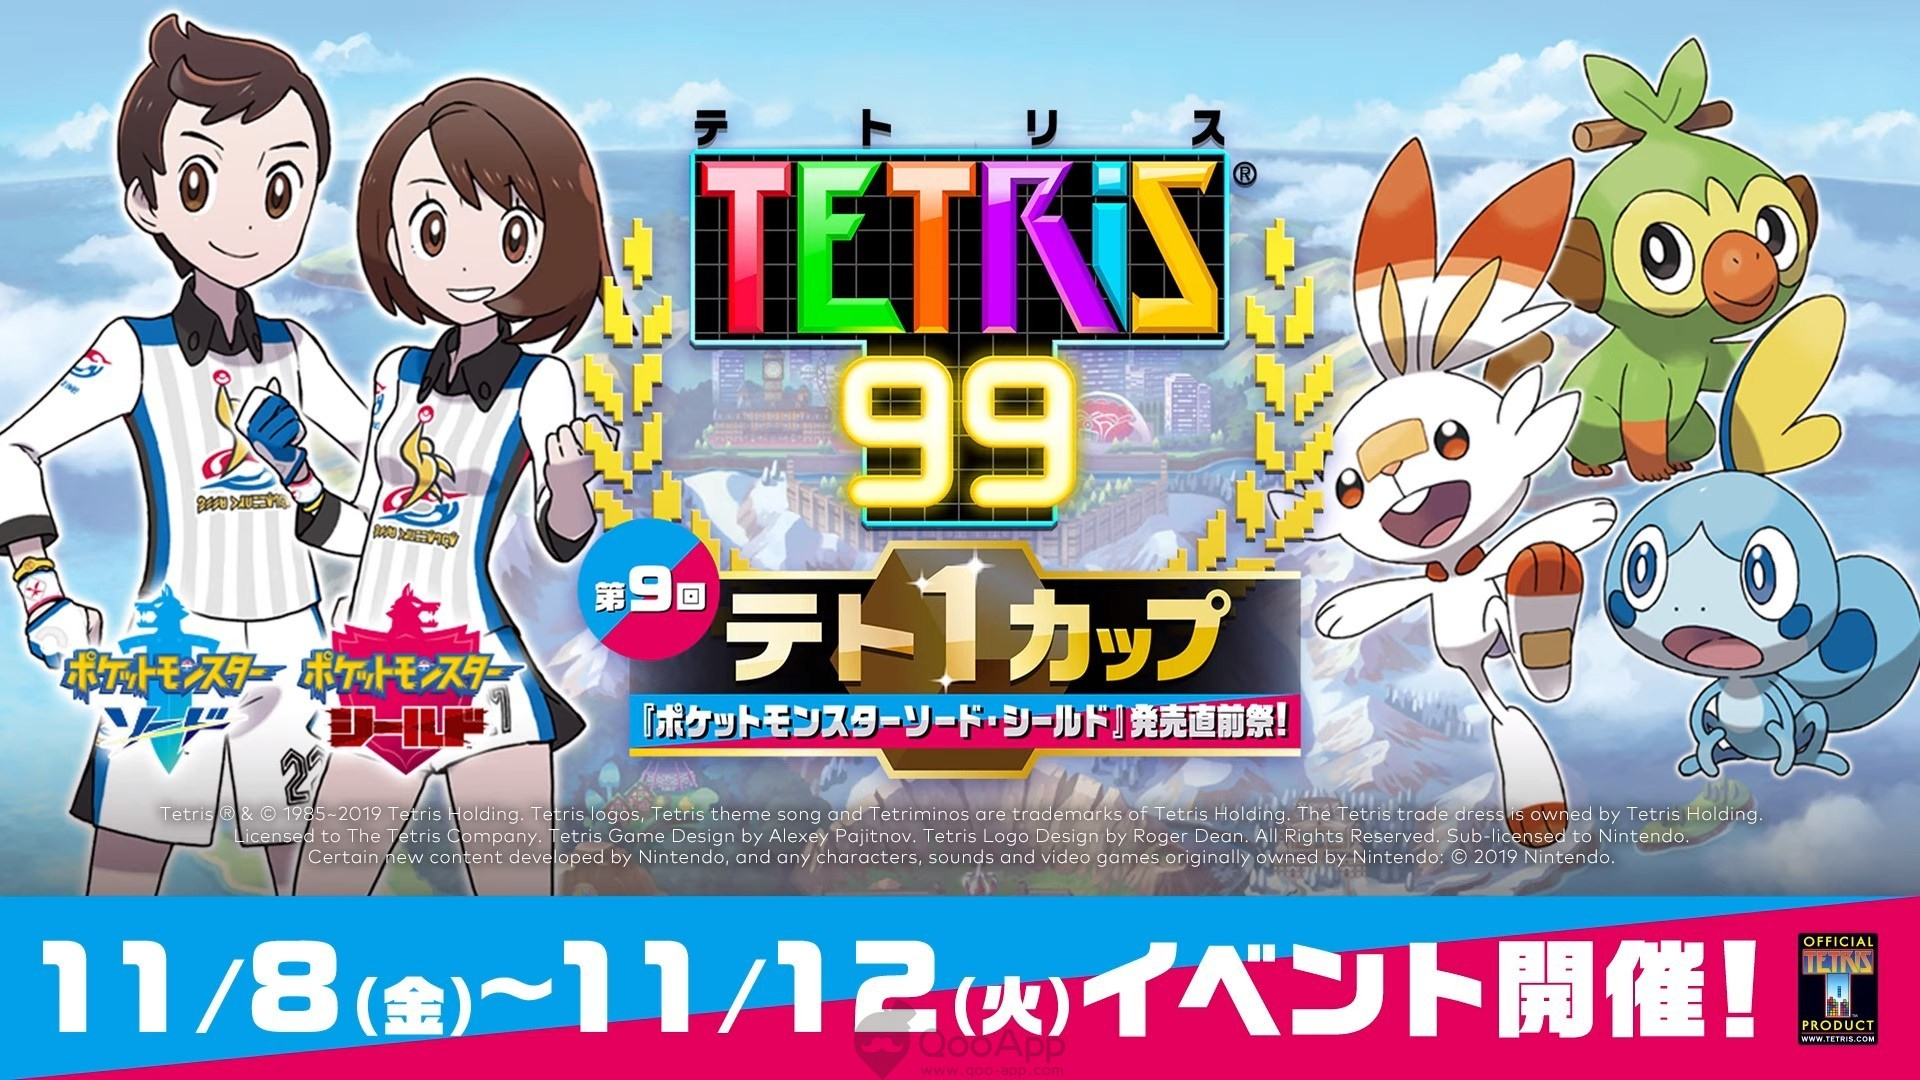 Tetris x Pokemon Collaboration Coming Soon